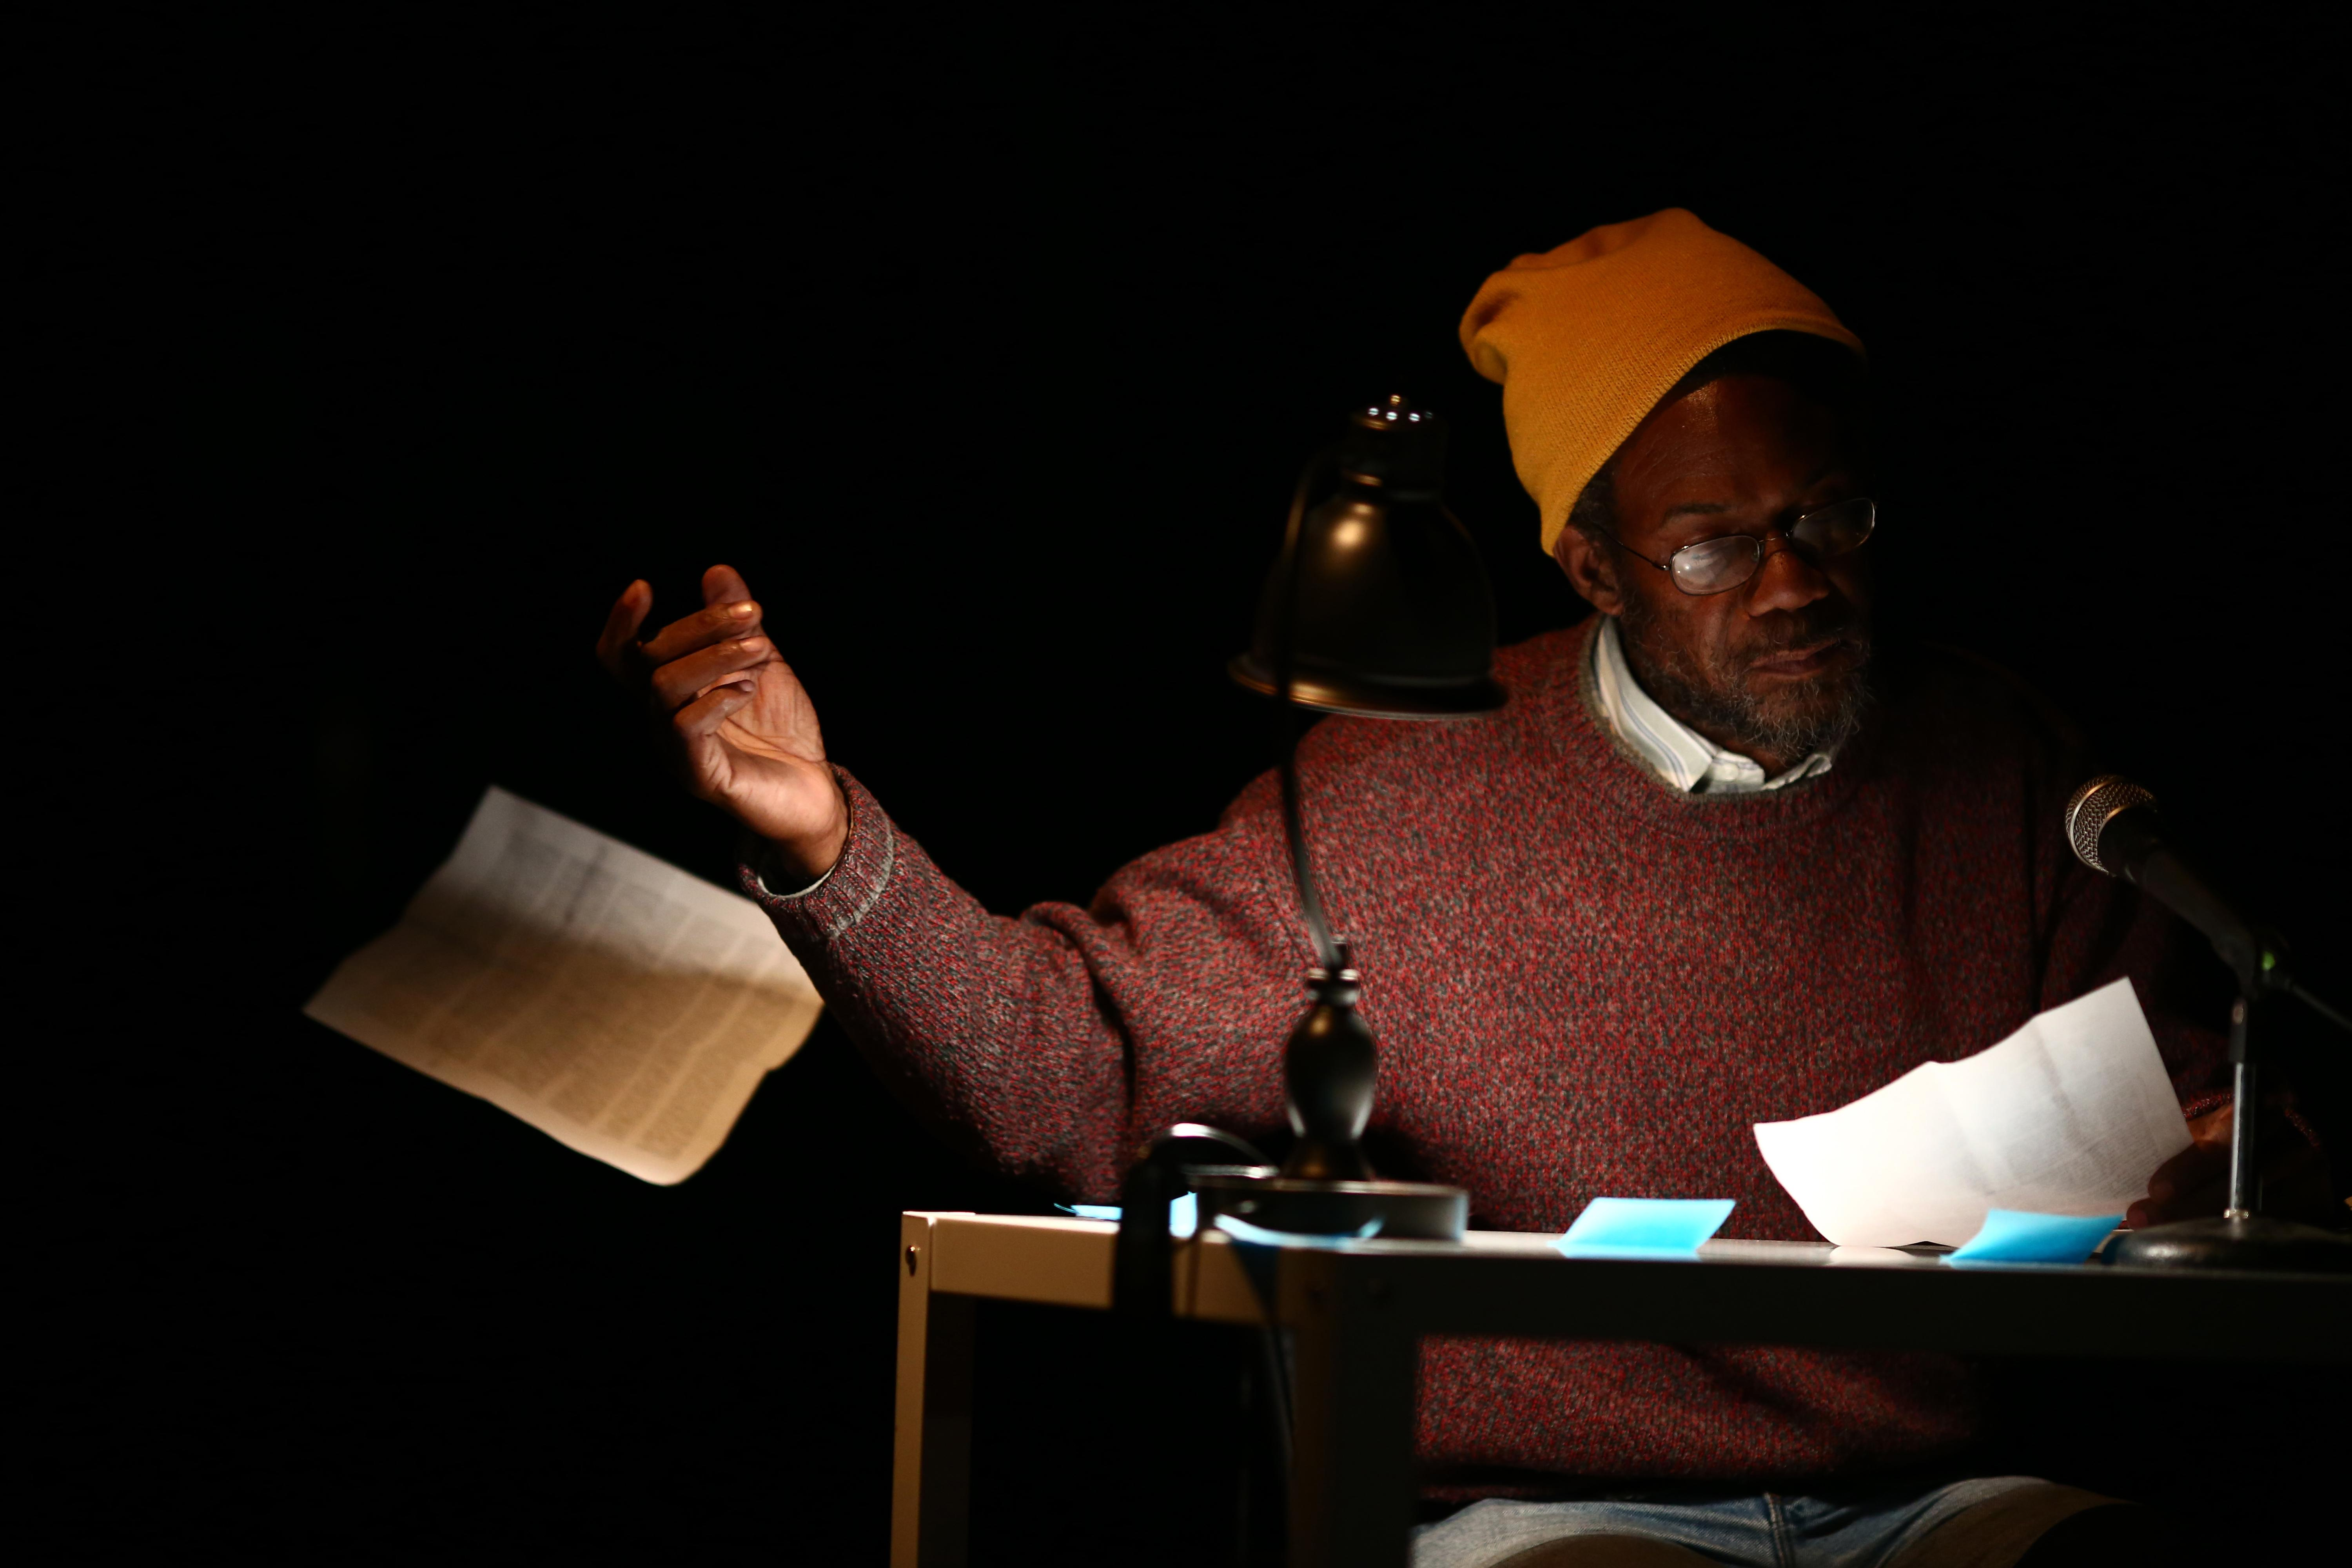 A dark-skinned older man sits at a table illuminated by a desk lamp on an otherwise pitch-black stage. He looks at one sheet of paper and tosses another to the floor.